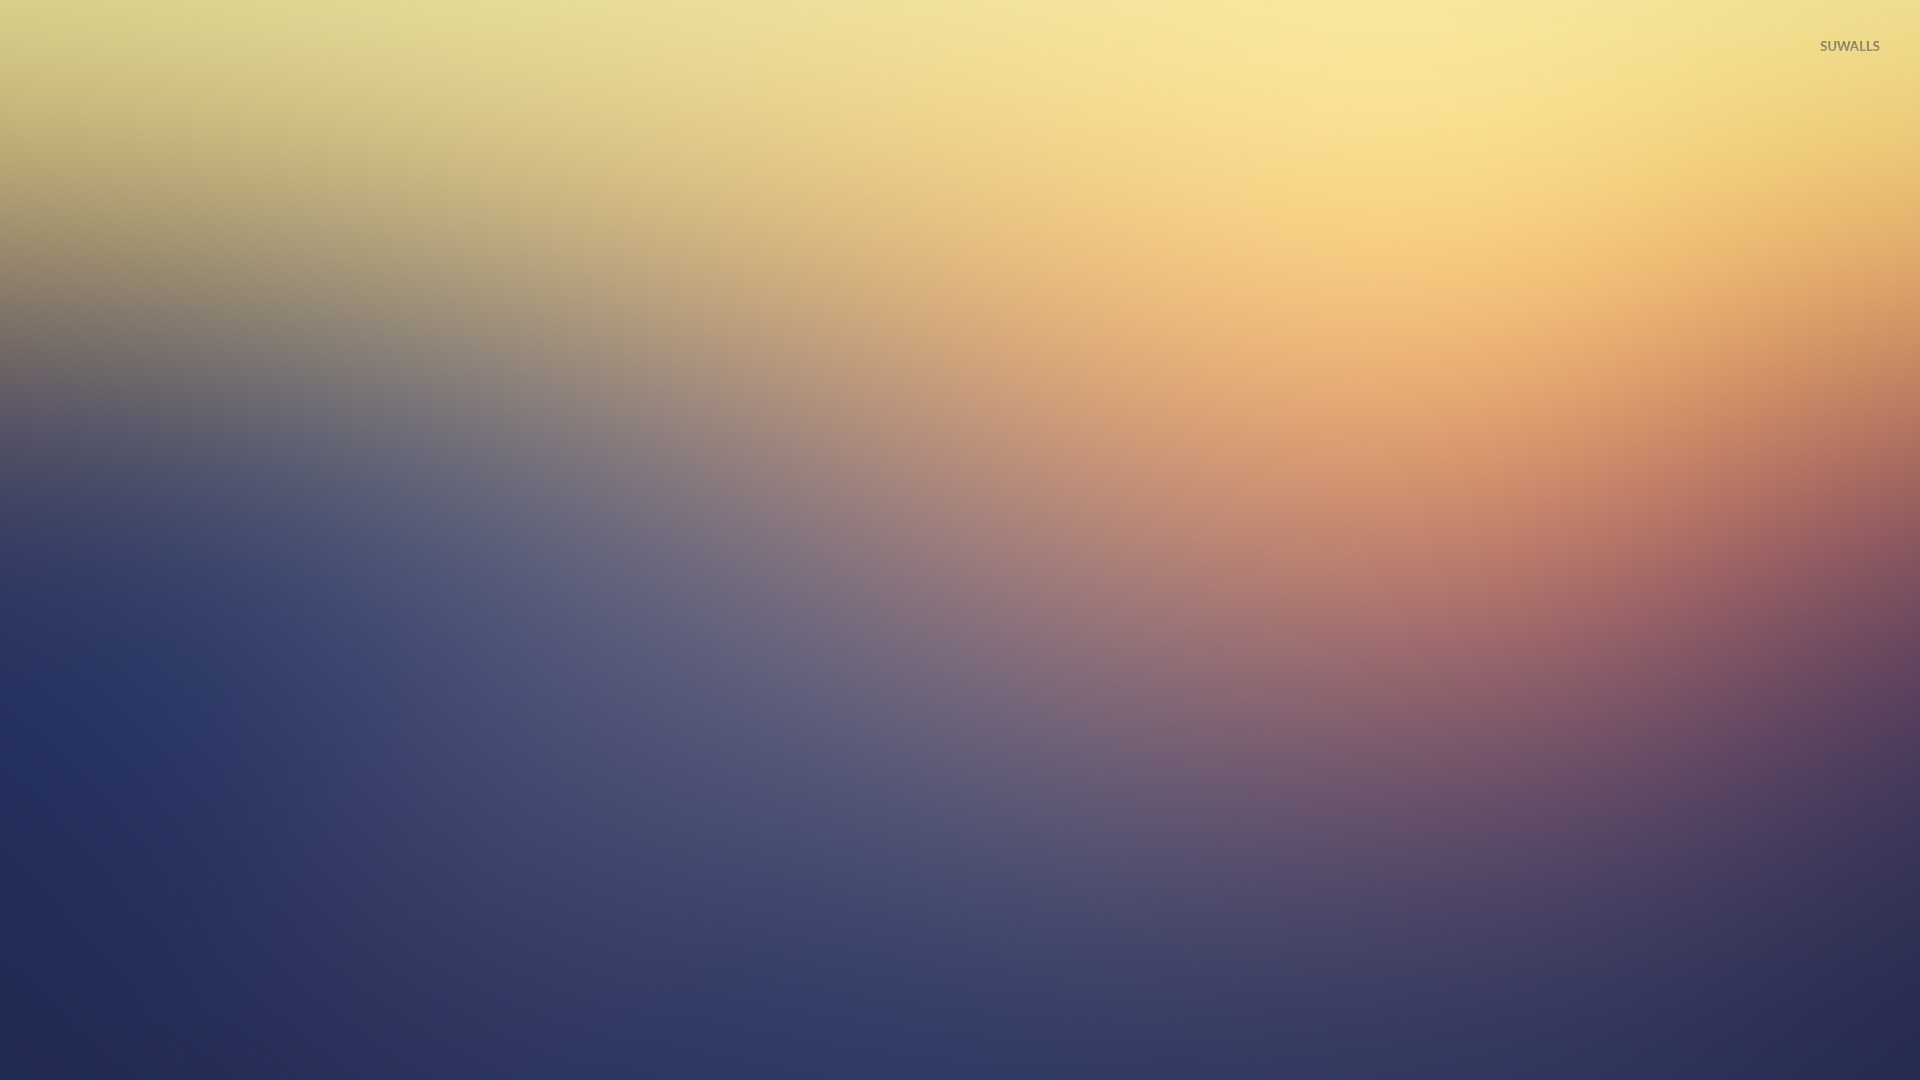 colorful blur 5 wallpaper abstract wallpapers 46218